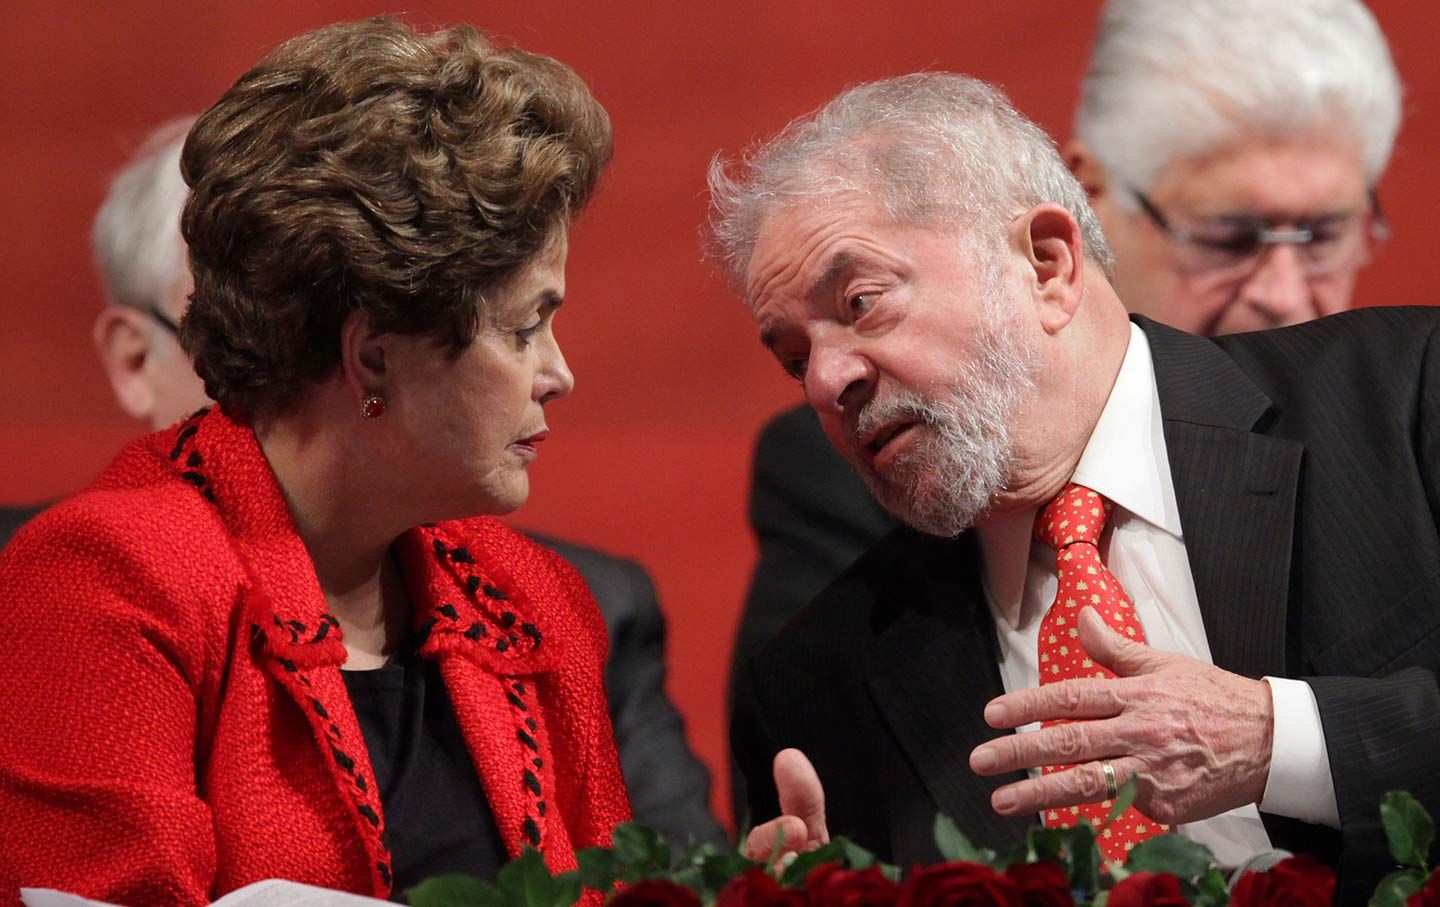 Brazilians protest ahead of ruling in Lula corruption trial